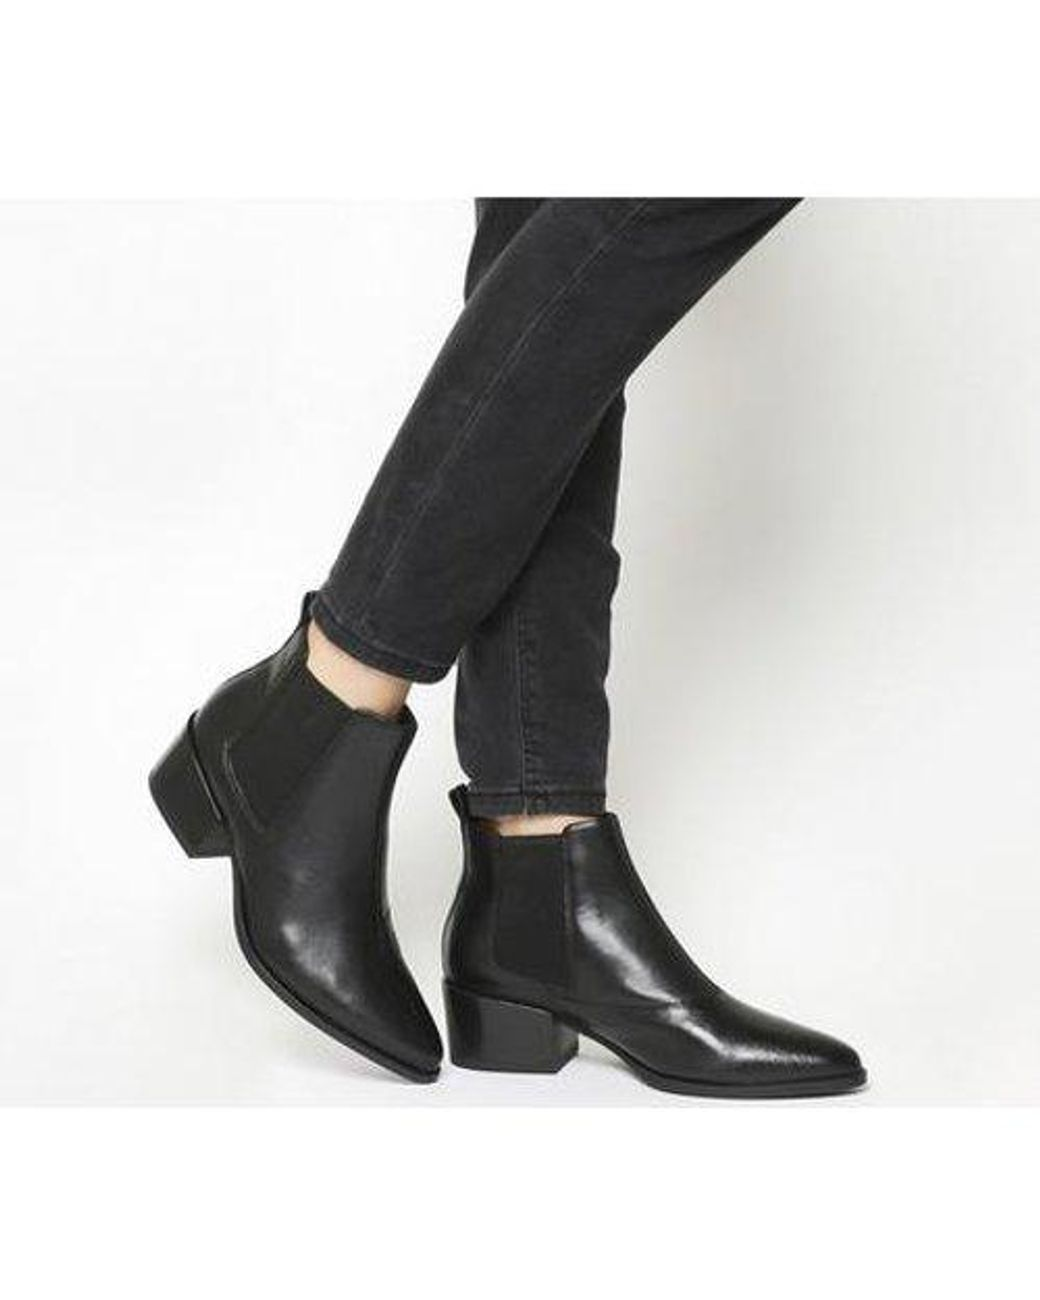 Vagabond Leather Marja Ankle Boot in